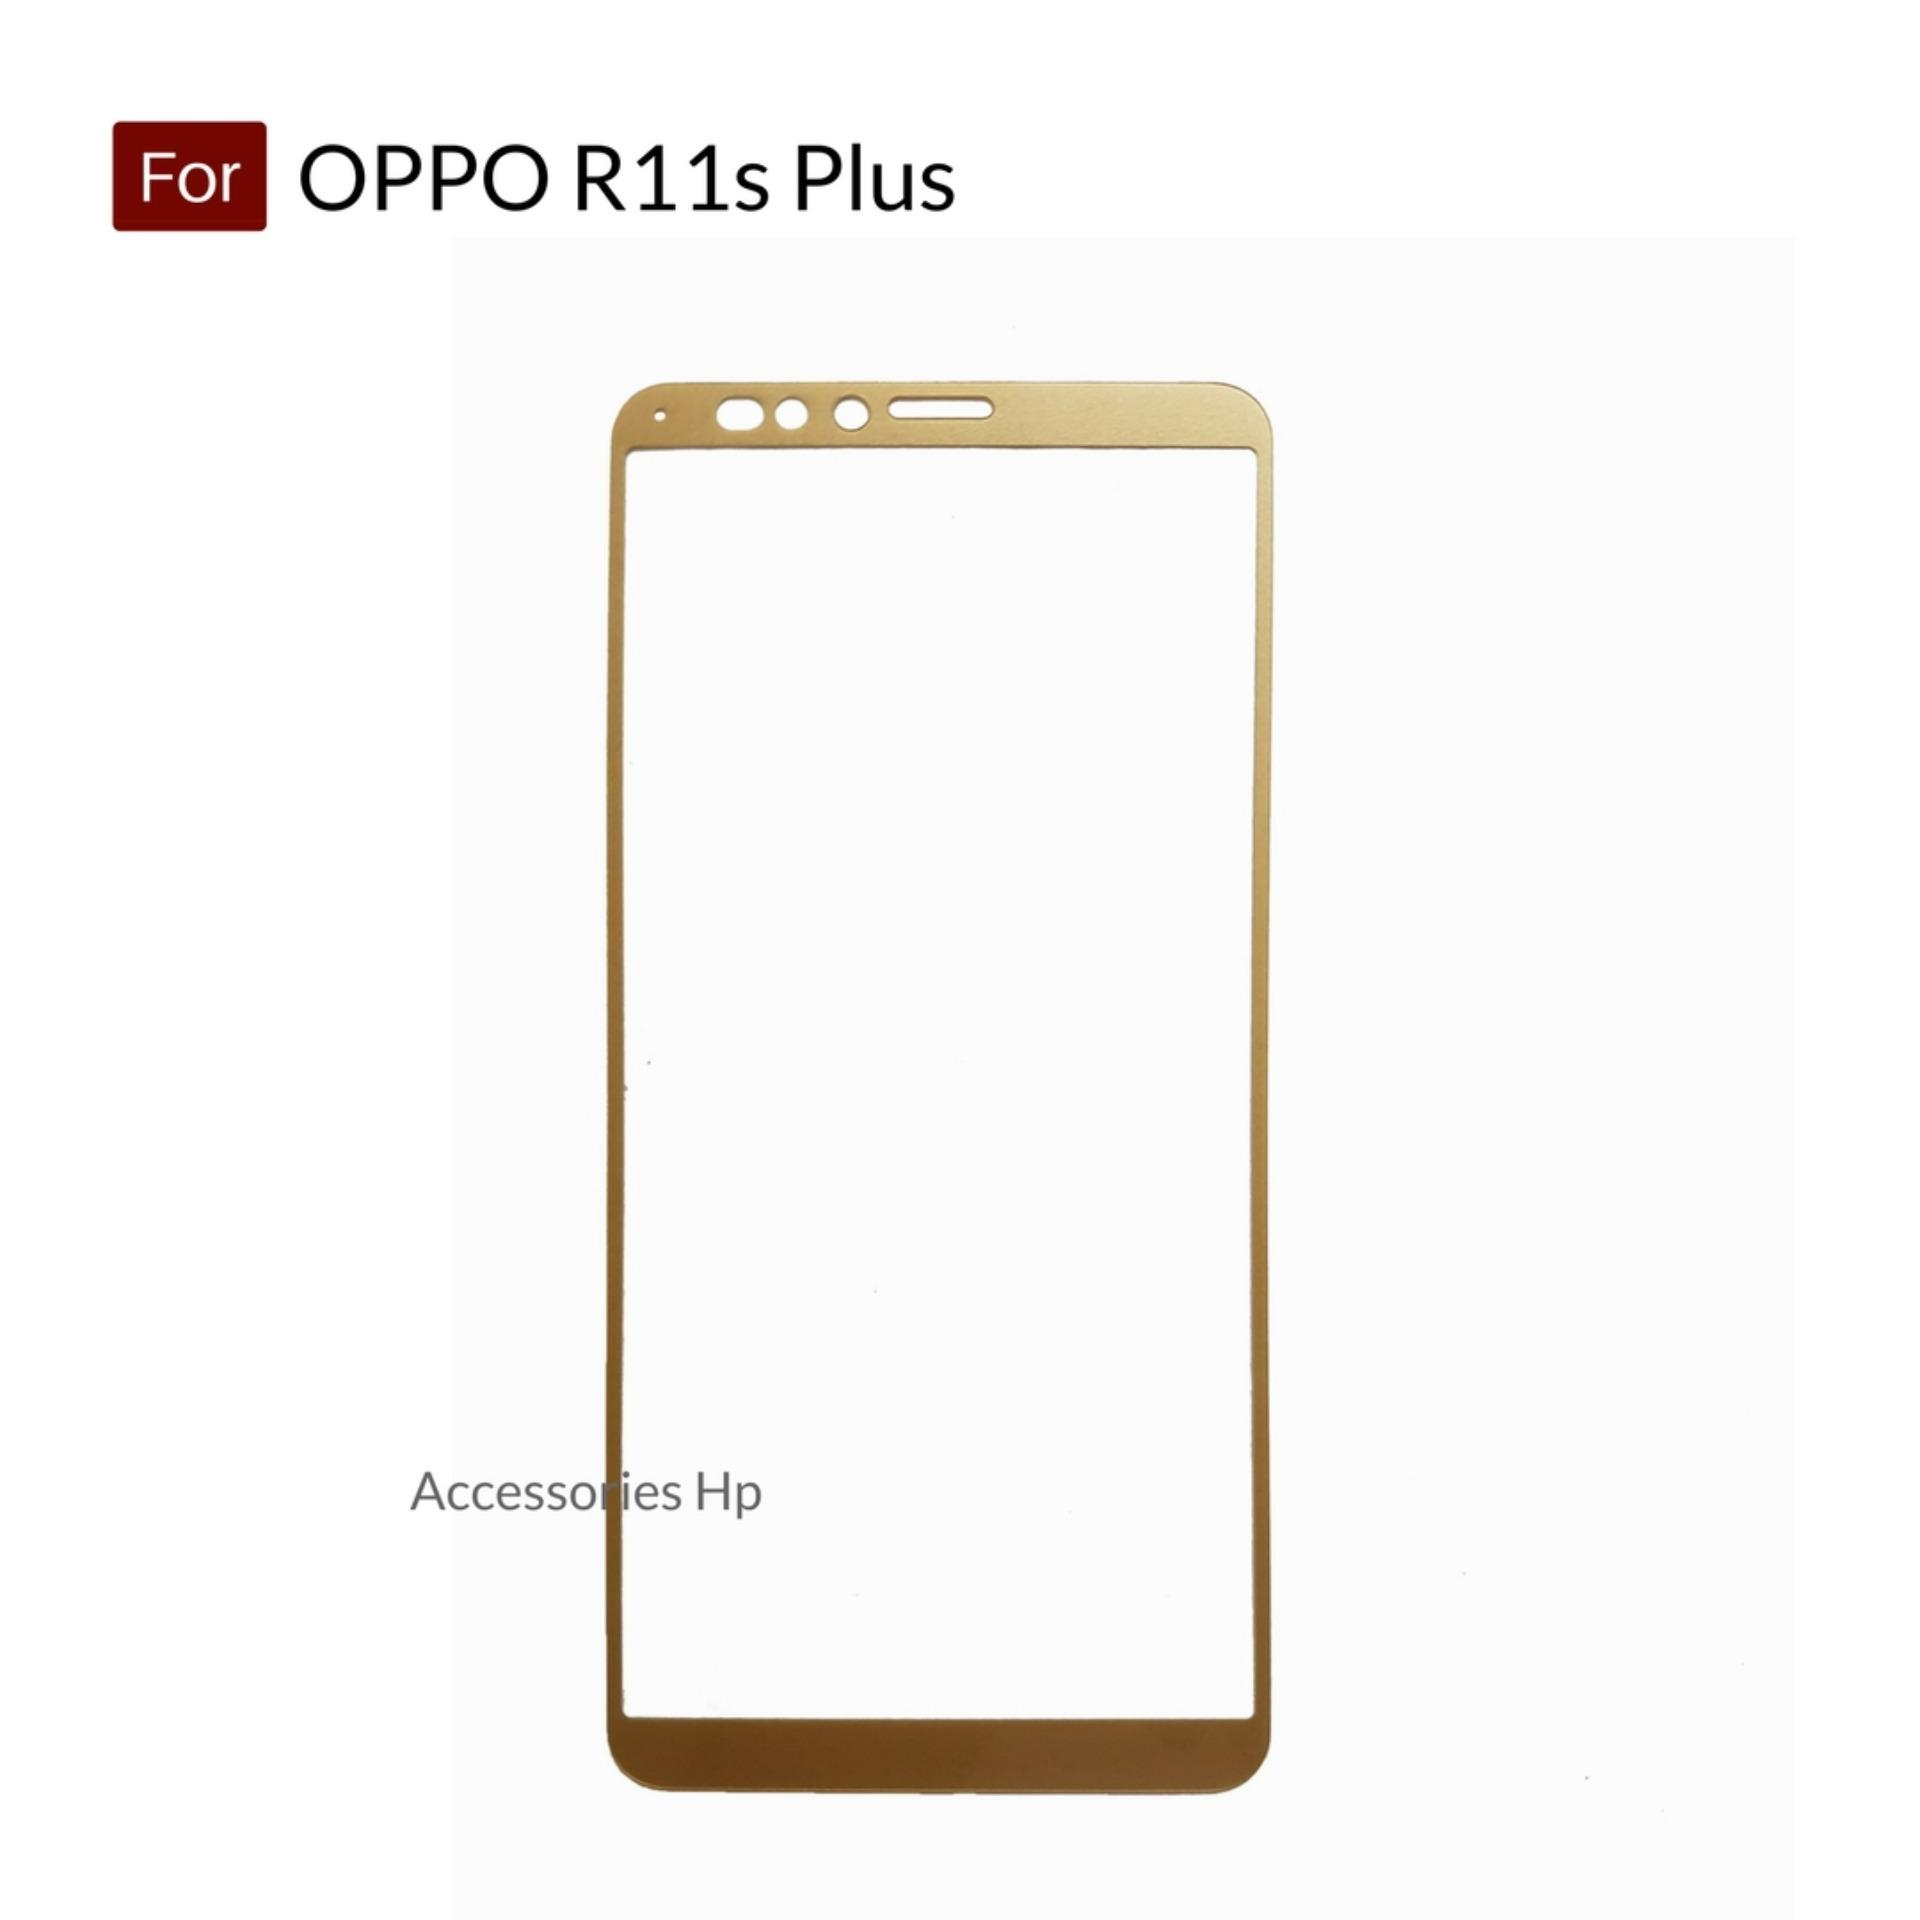 Accessories Hp Full Cover Tempered Glass Warna Screen Protector for OPPO R11s Plus - Gold